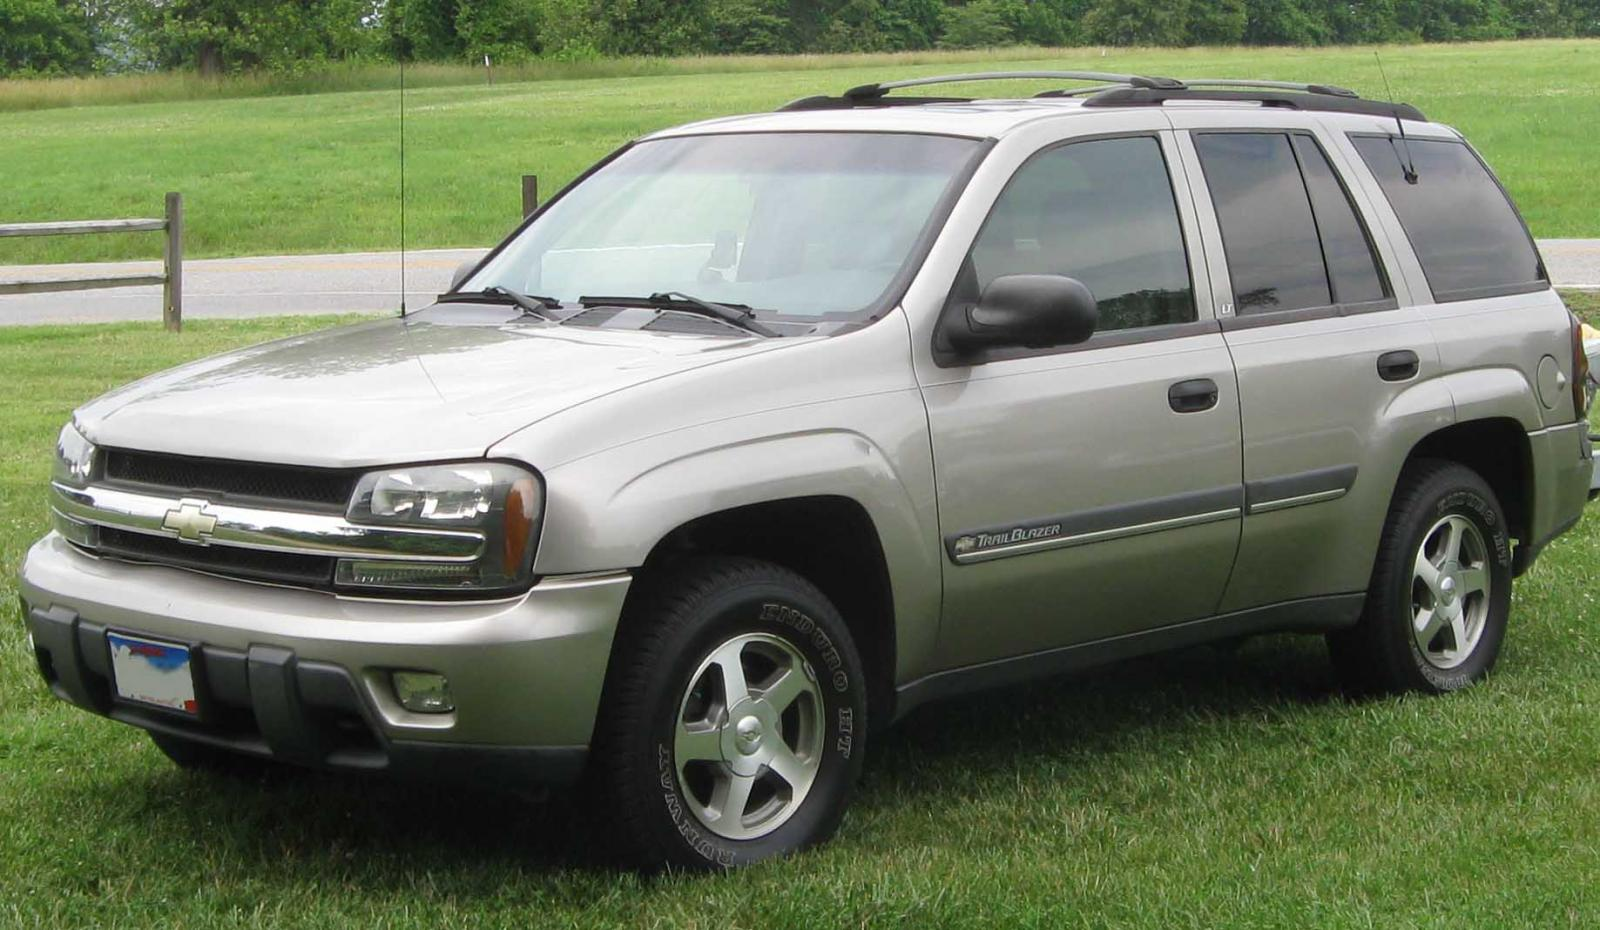 hight resolution of 2004 chevrolet trailblazer information and photos zombiedrive 2006 chevy trailblazer rear fuse box 2004 chevrolet trailblazer